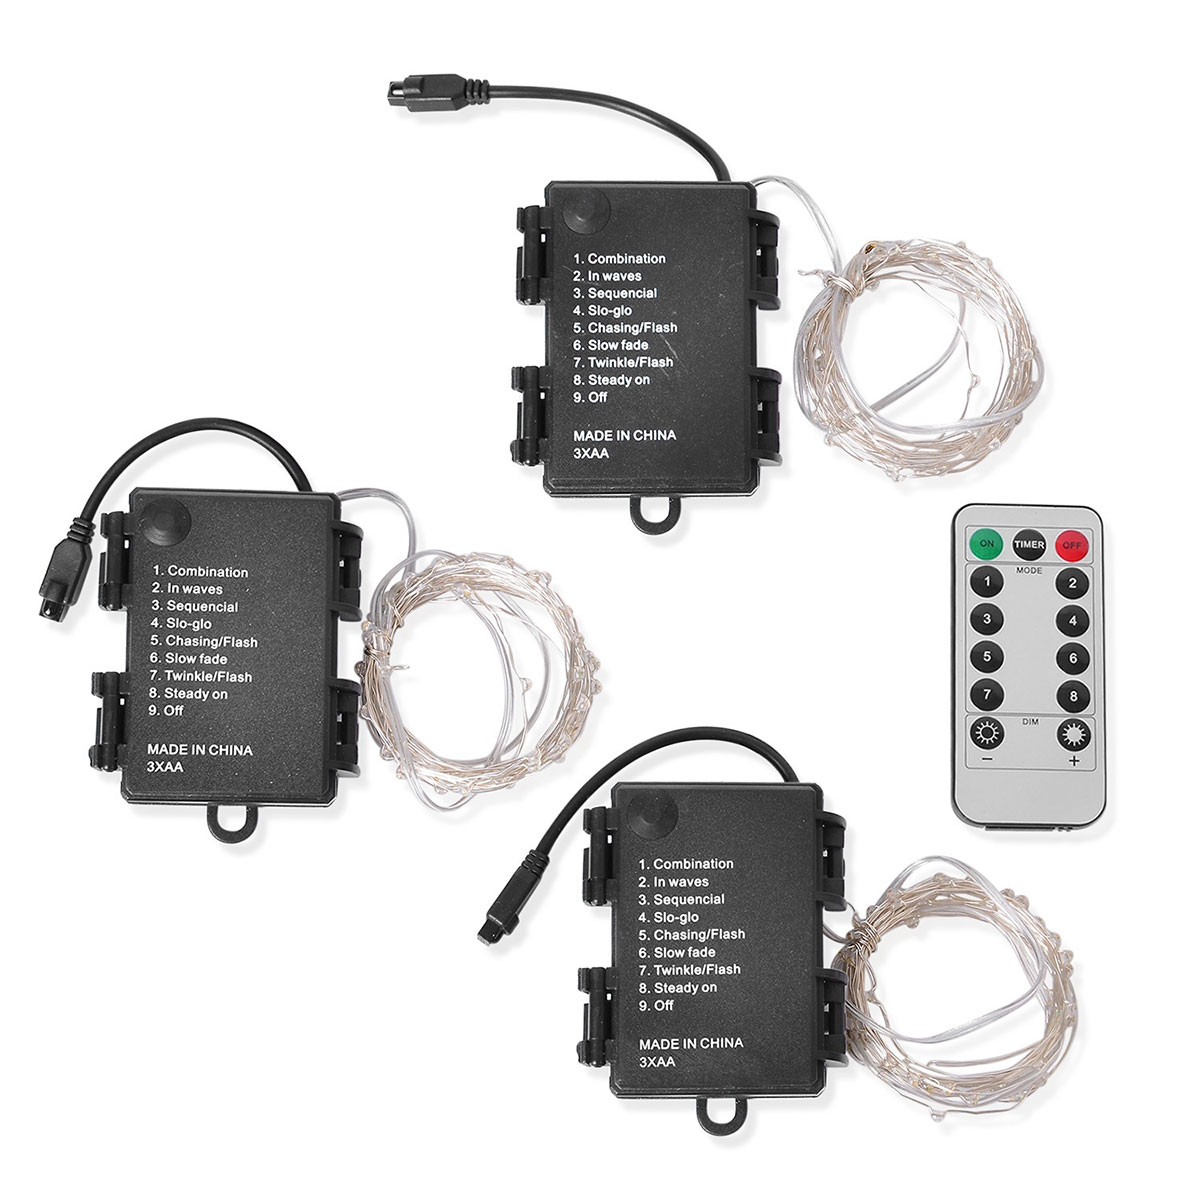 Set Of 3 Red Meter Micro Led String Lights With Wireless Remote 3xaa Battery Not Included Lc